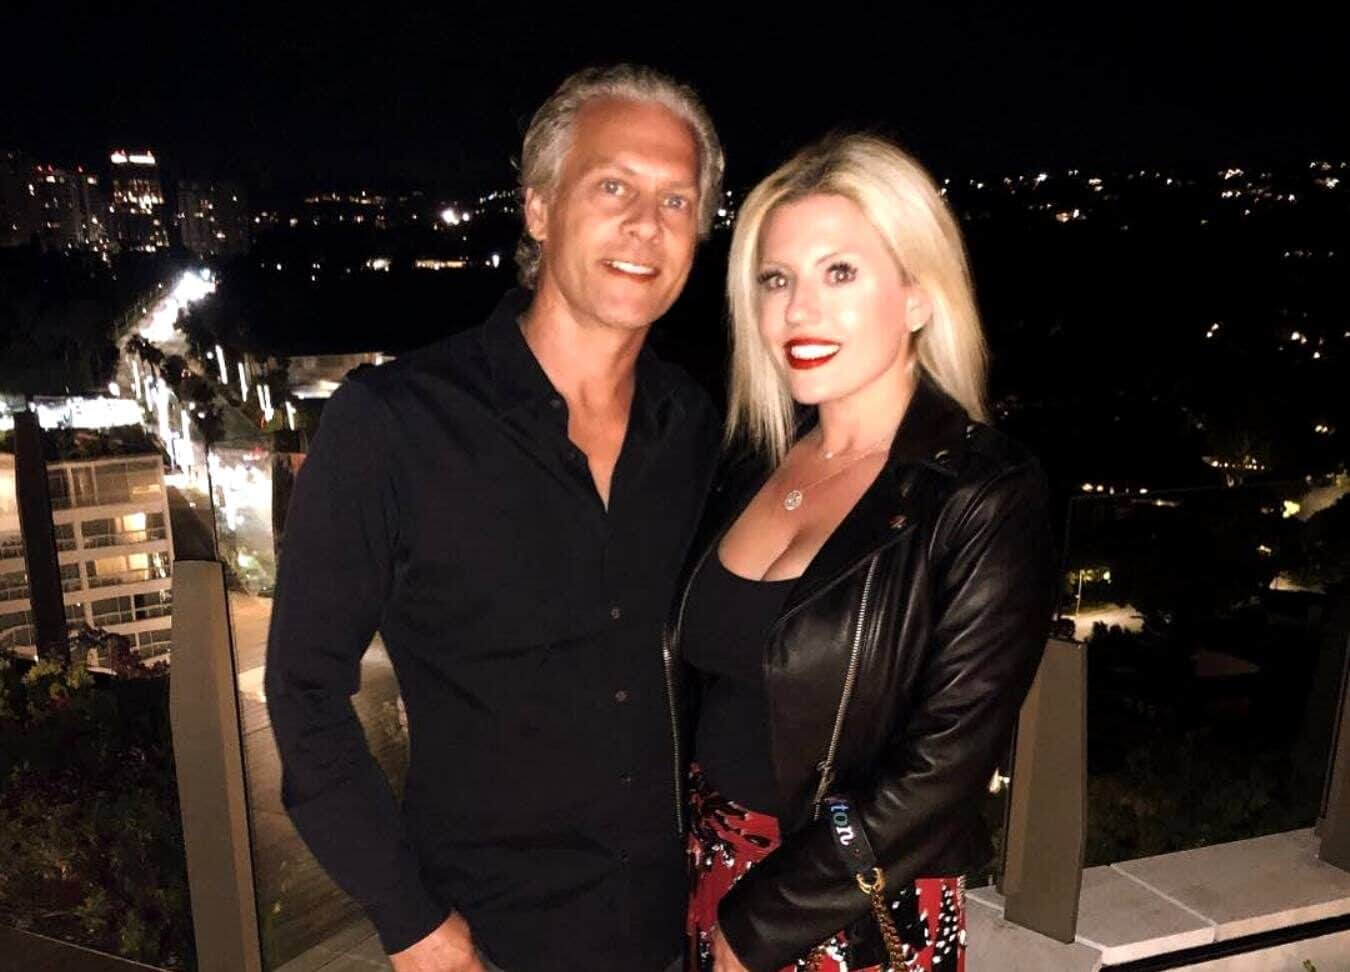 David Beador's Fiancee Lesley Cook Shares Baby Bump Photo and Reveals Wedding Plans With the Former RHOC Star